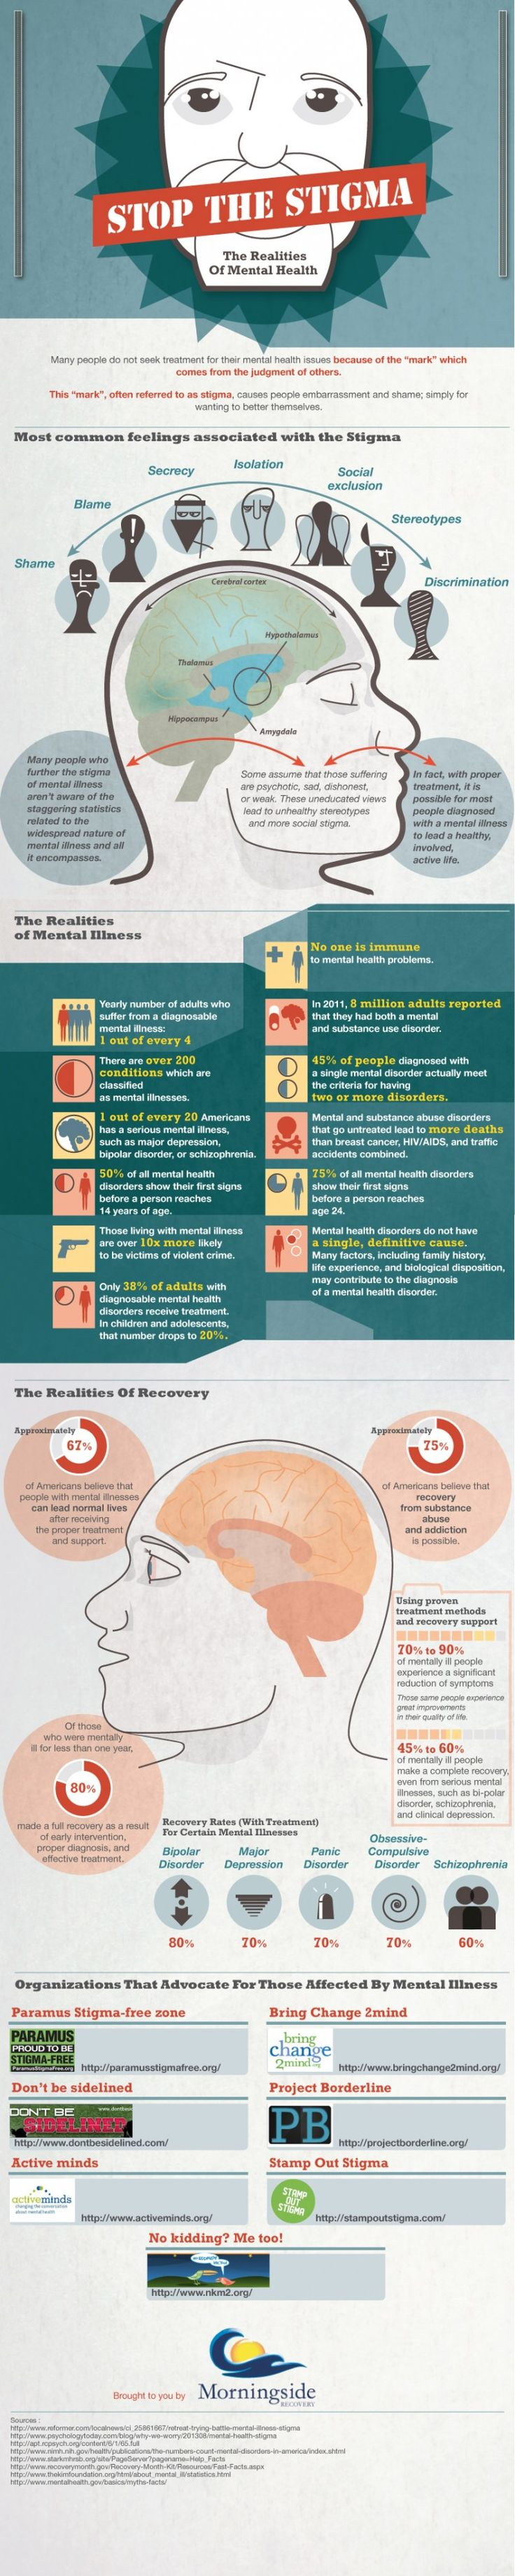 "Stop The Stigma : The Realities Of Mental Health: There are some widespread misconceptions about mental health disorders. People think the cure for depression is to ""keep your chin up,"" that addiction is simple weakness, and that obsessive-compulsive disorder is humorous.  Let's set the record straight about how this stigma actually affects the lives of people living with mental health issues with this infographic from Visual.ly."